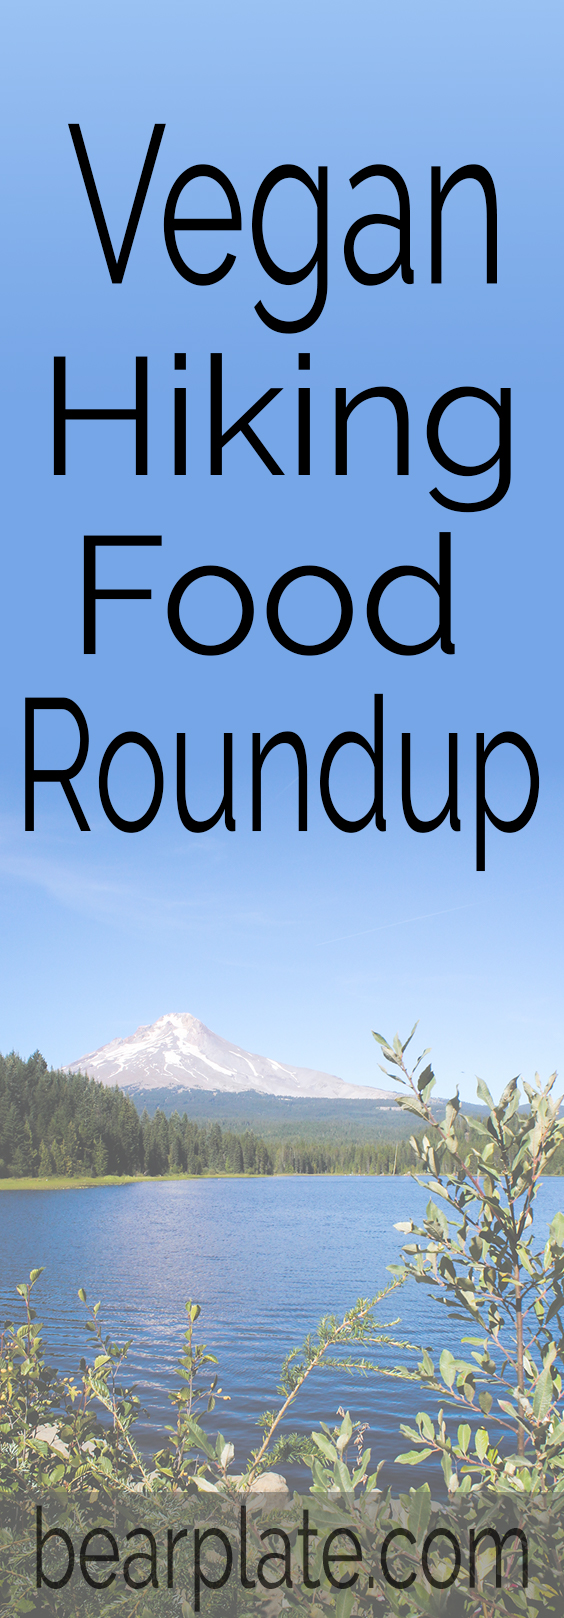 VEGAN HIKING RECIPES! Looking for some snack ideas for your next hiking adventure? Check out this recipe roundup! #vegan #hiking #veganonthetrail #food #recipes